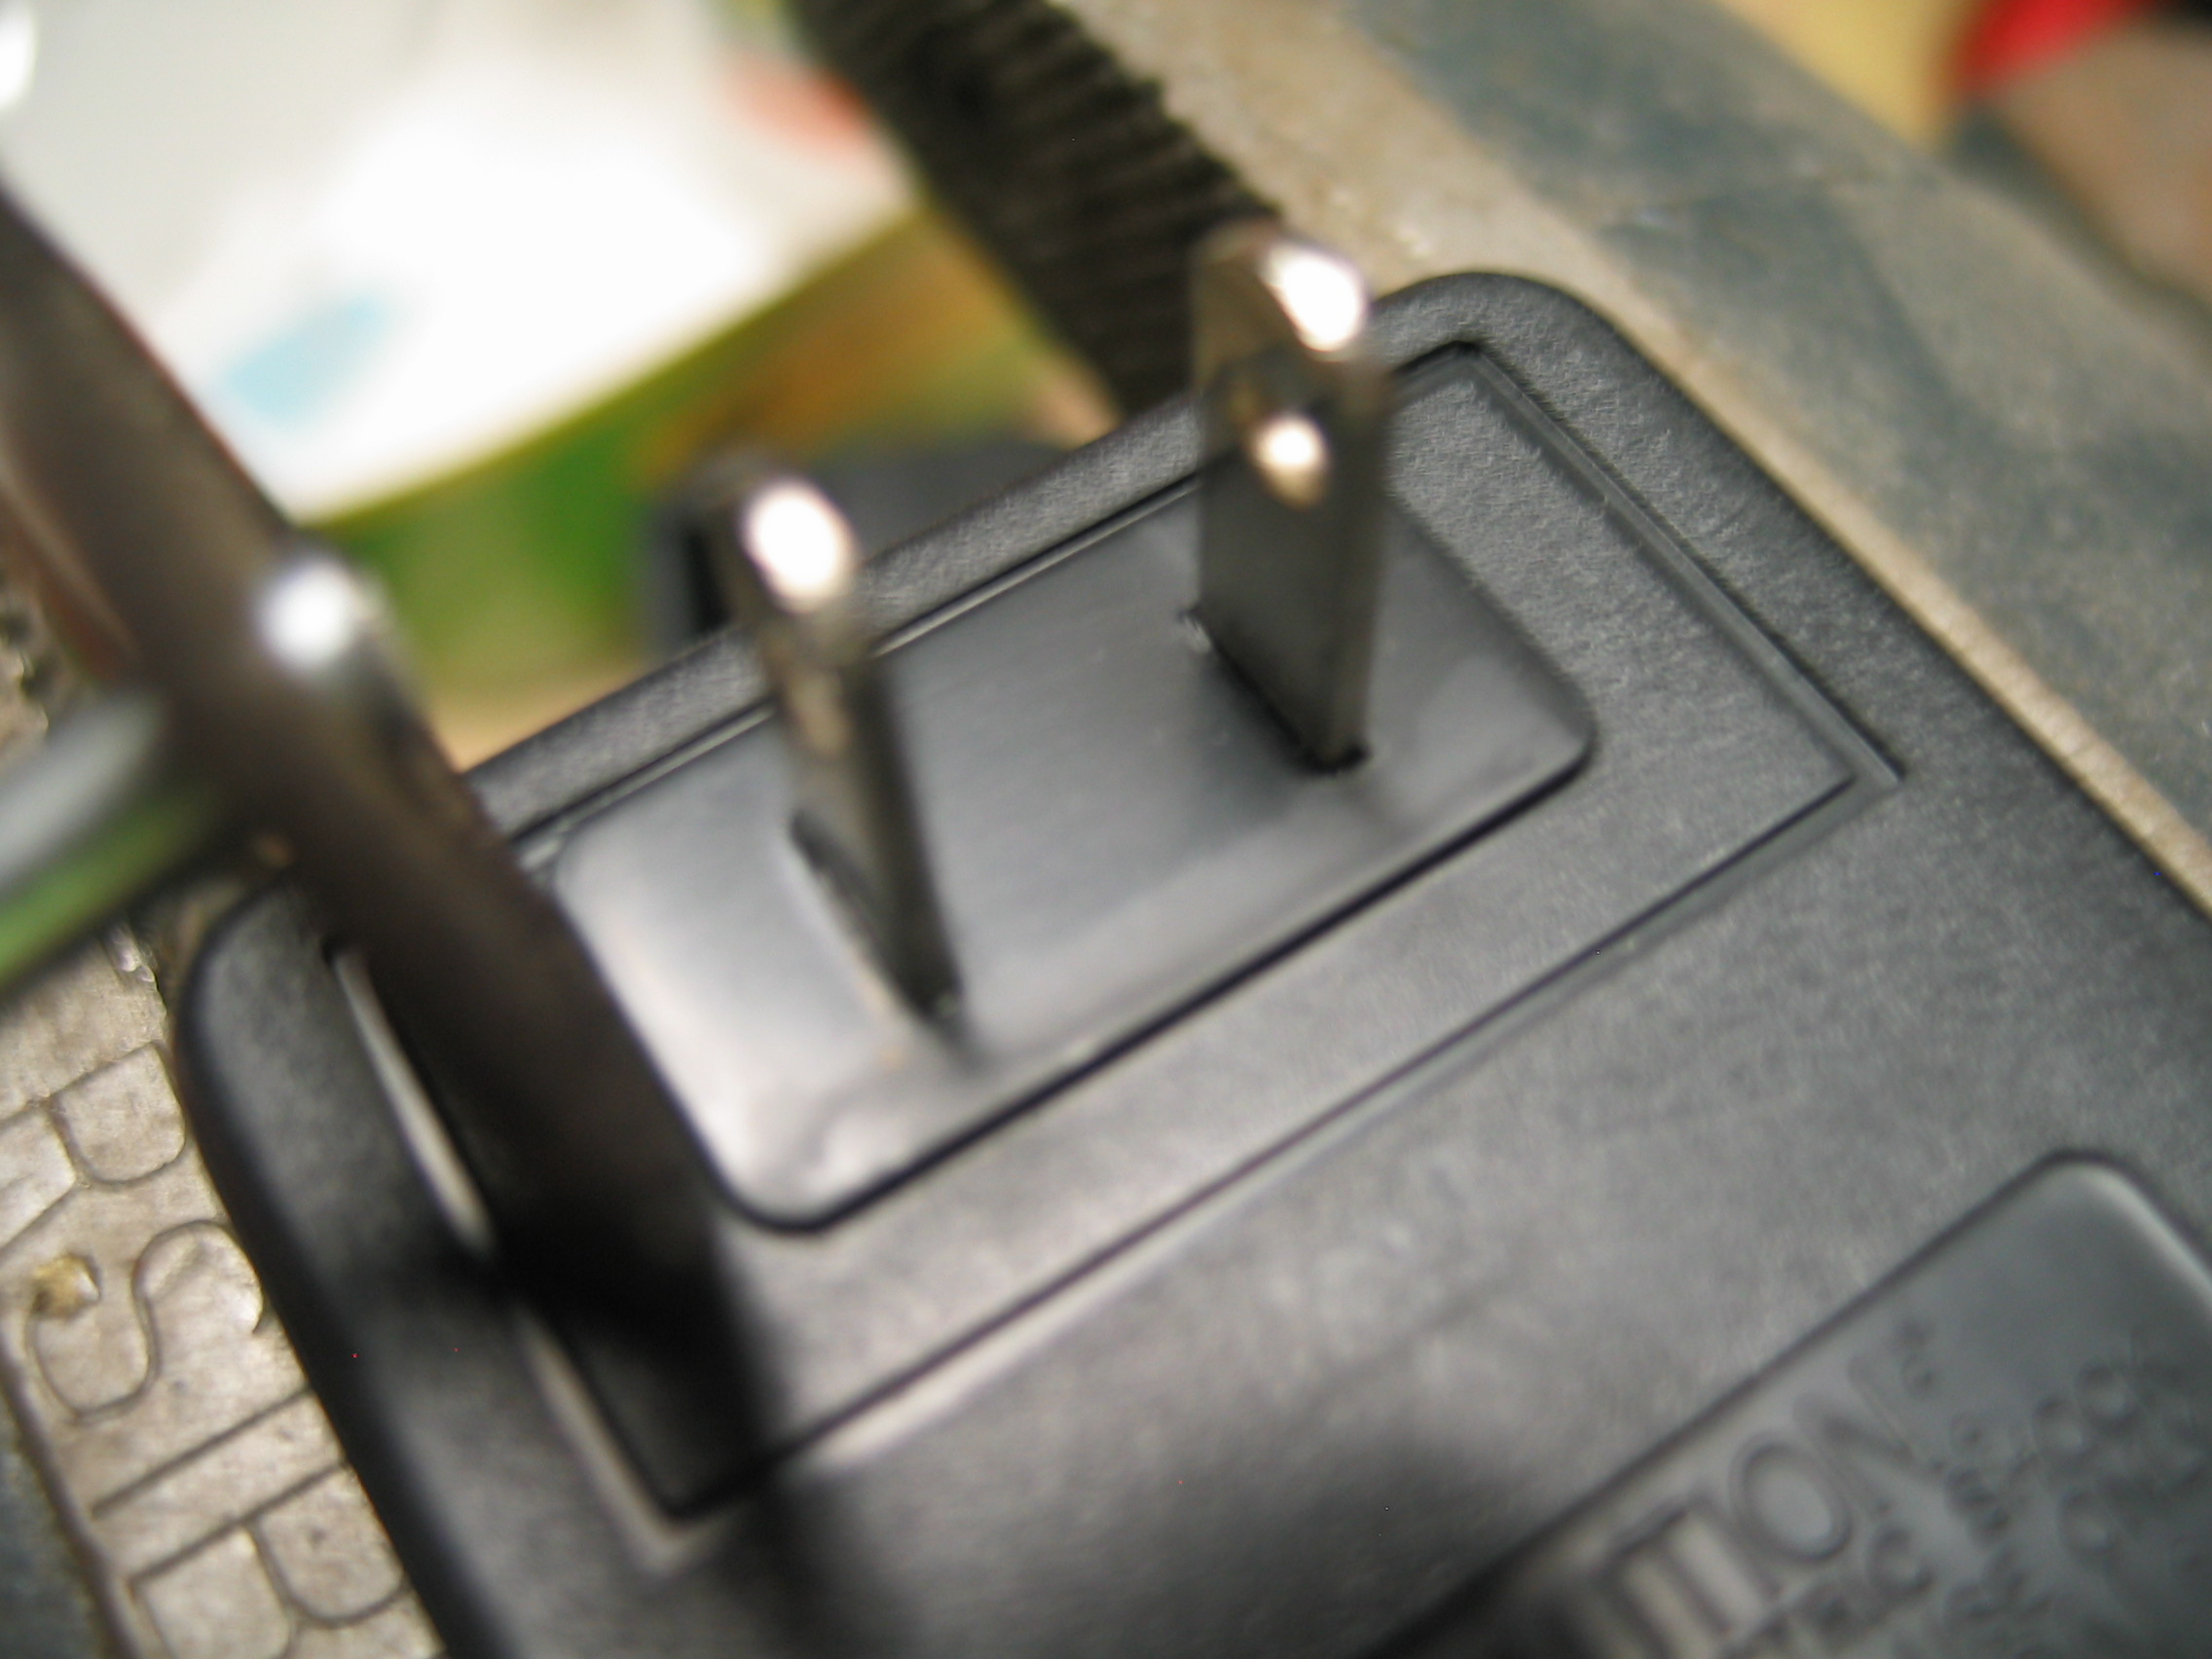 Picture of Cutting Around the Prongs for Easier Opening